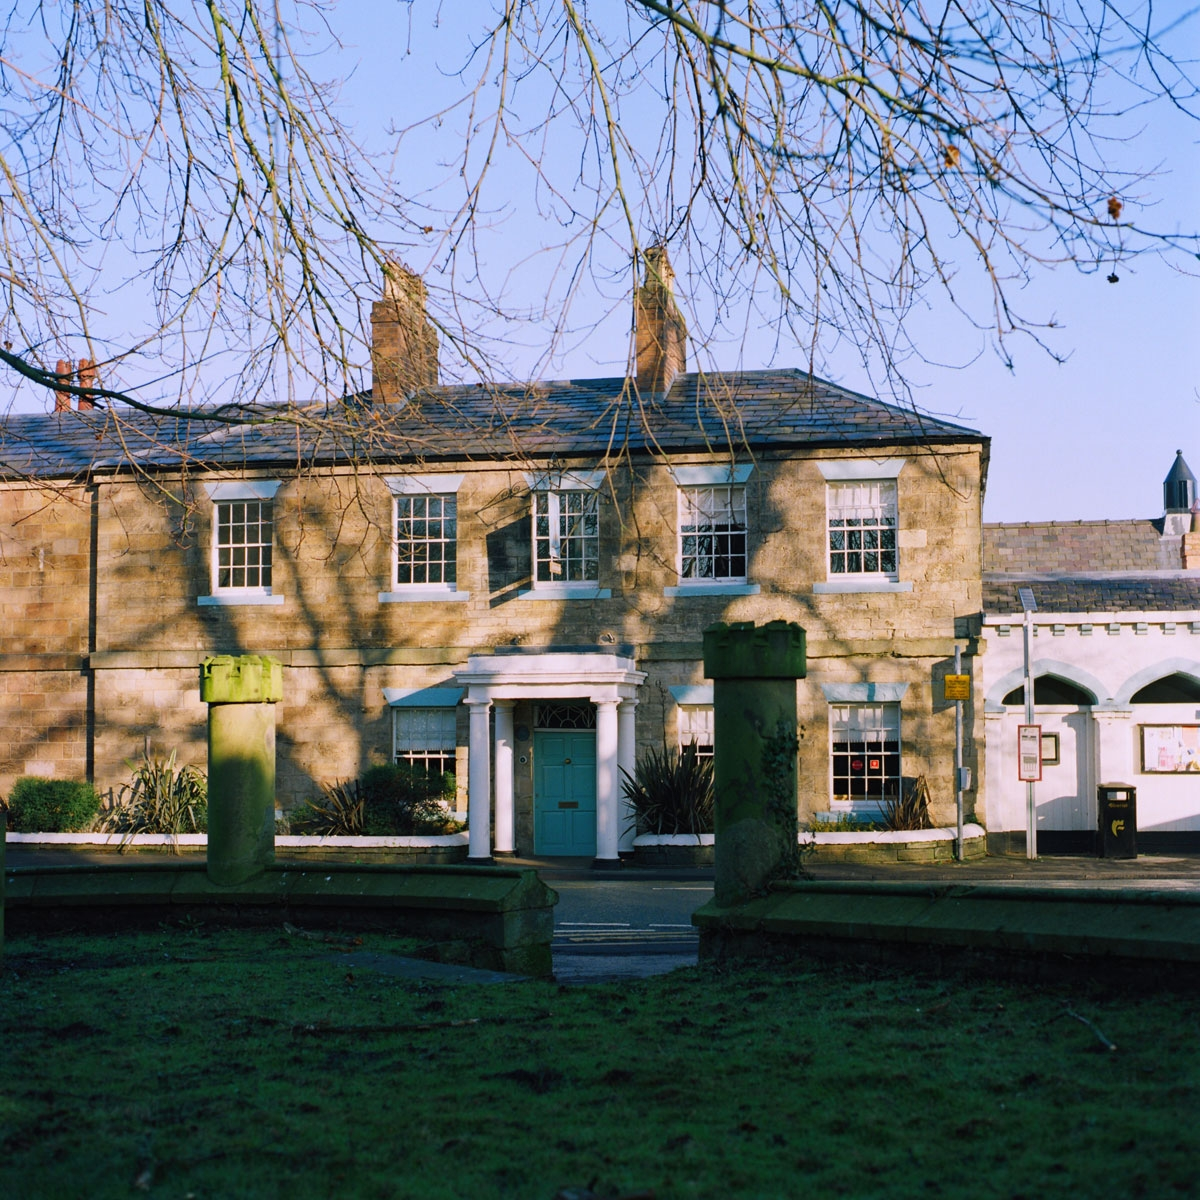 The Glynne Arms -